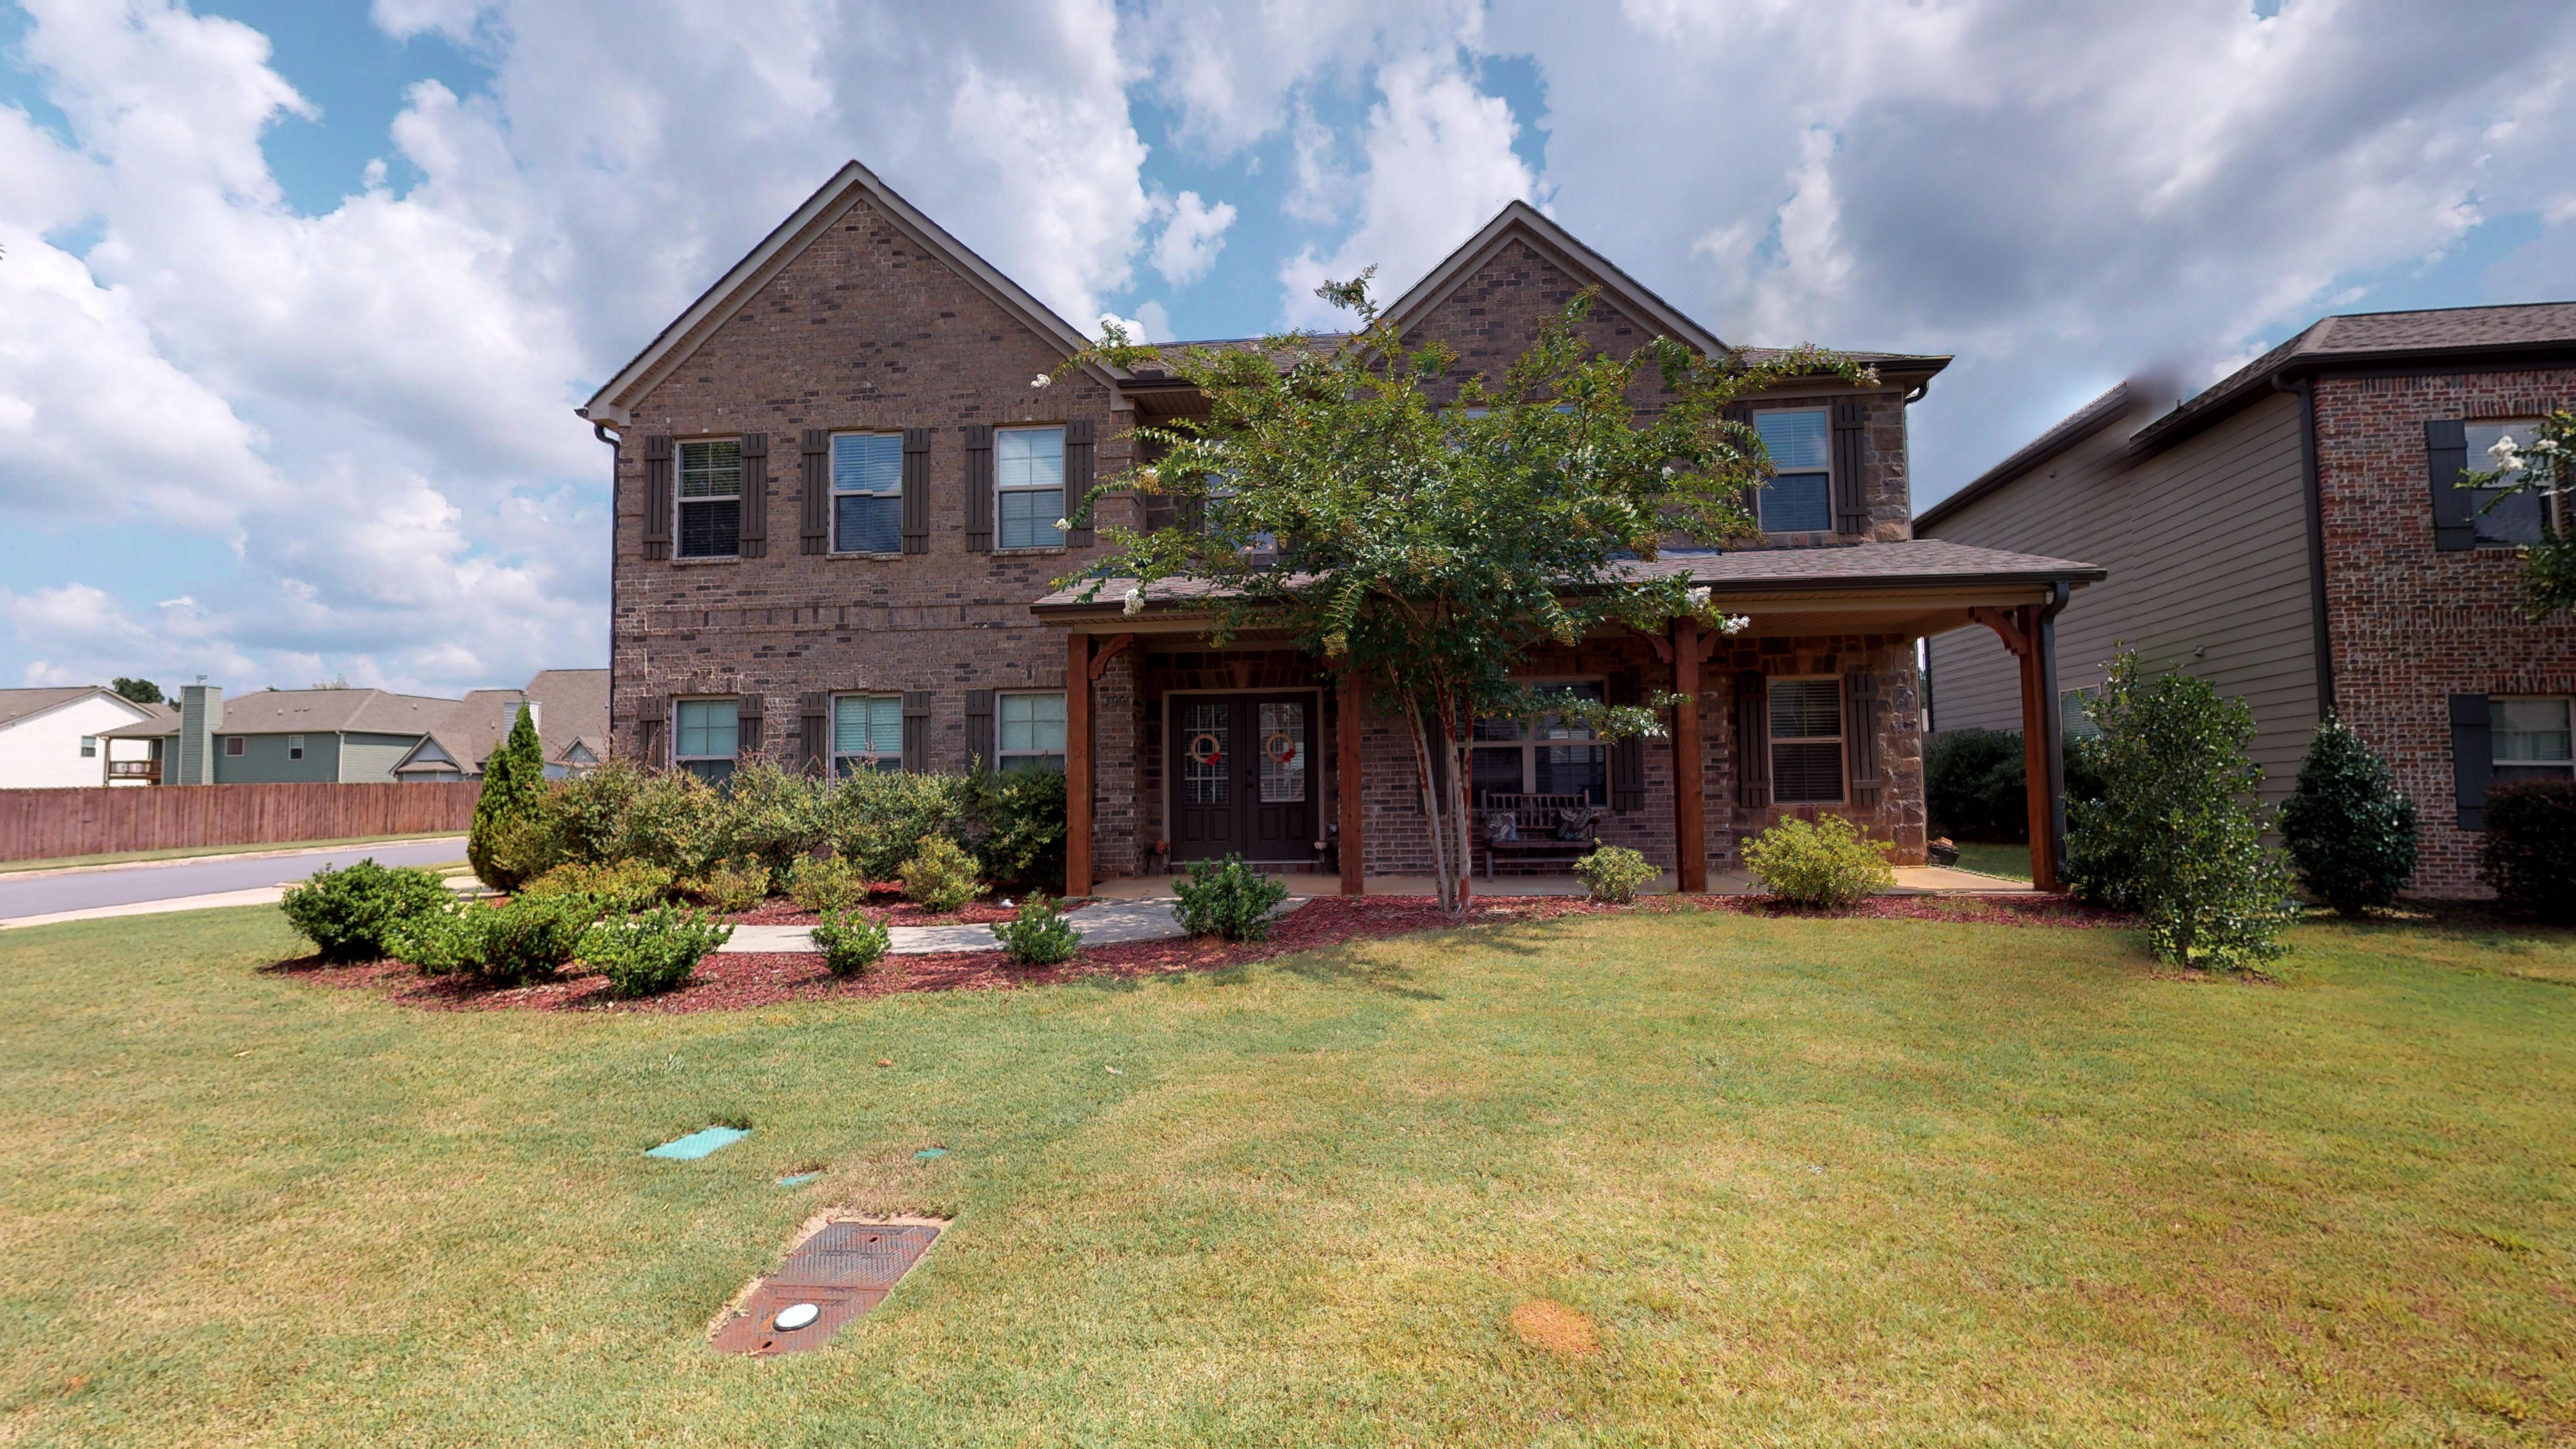 FOR SALE IN OPELIKA! 5 BED 4 BATH AT 3001 STILLWOOD WAY